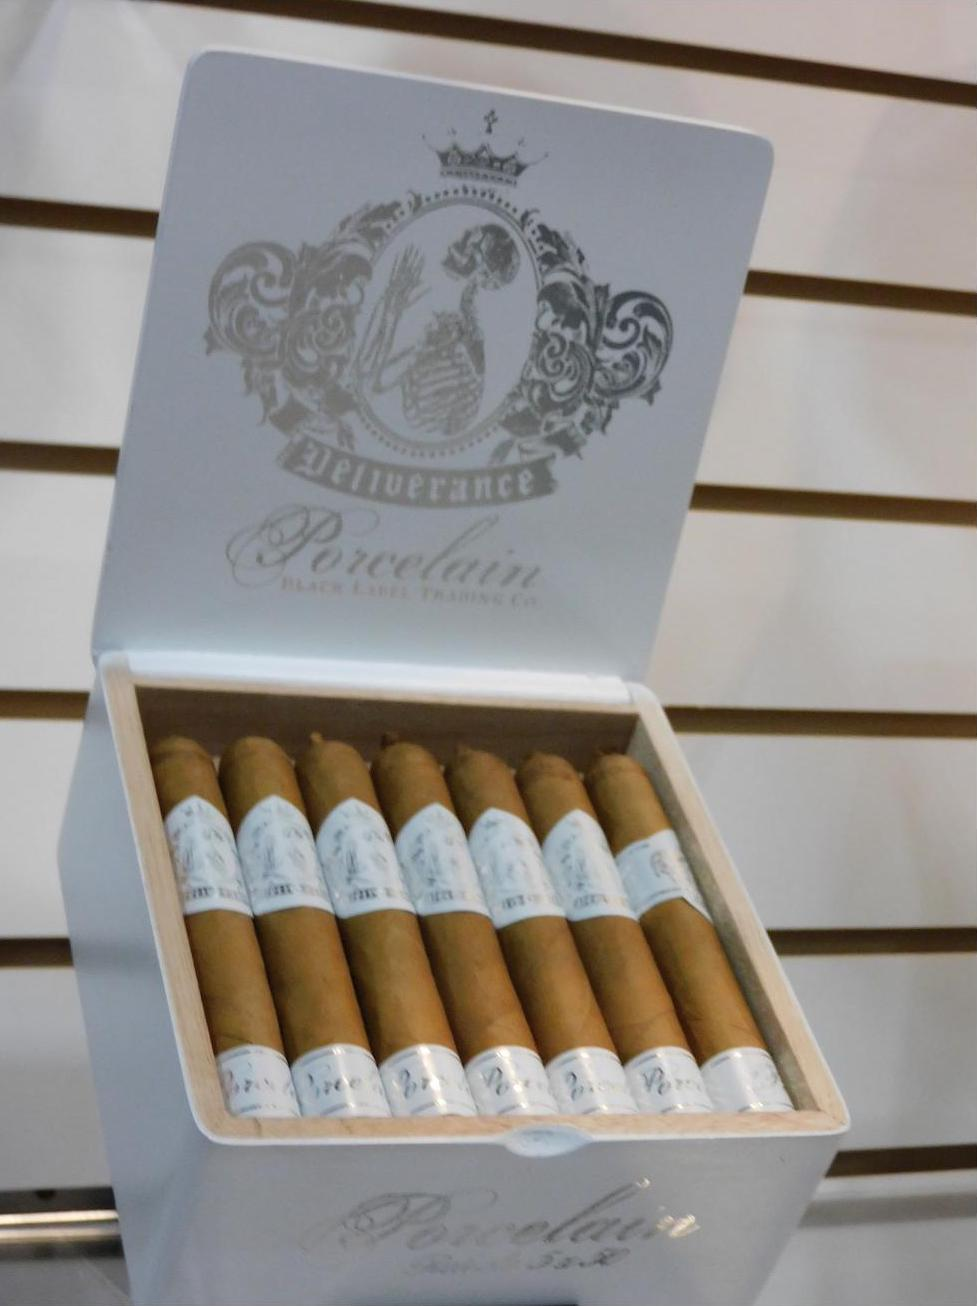 Cigar News: Oveja Negra Brands Launches Black Label Trading Company Deliverance Porcelain Robusto at 2021 PCA